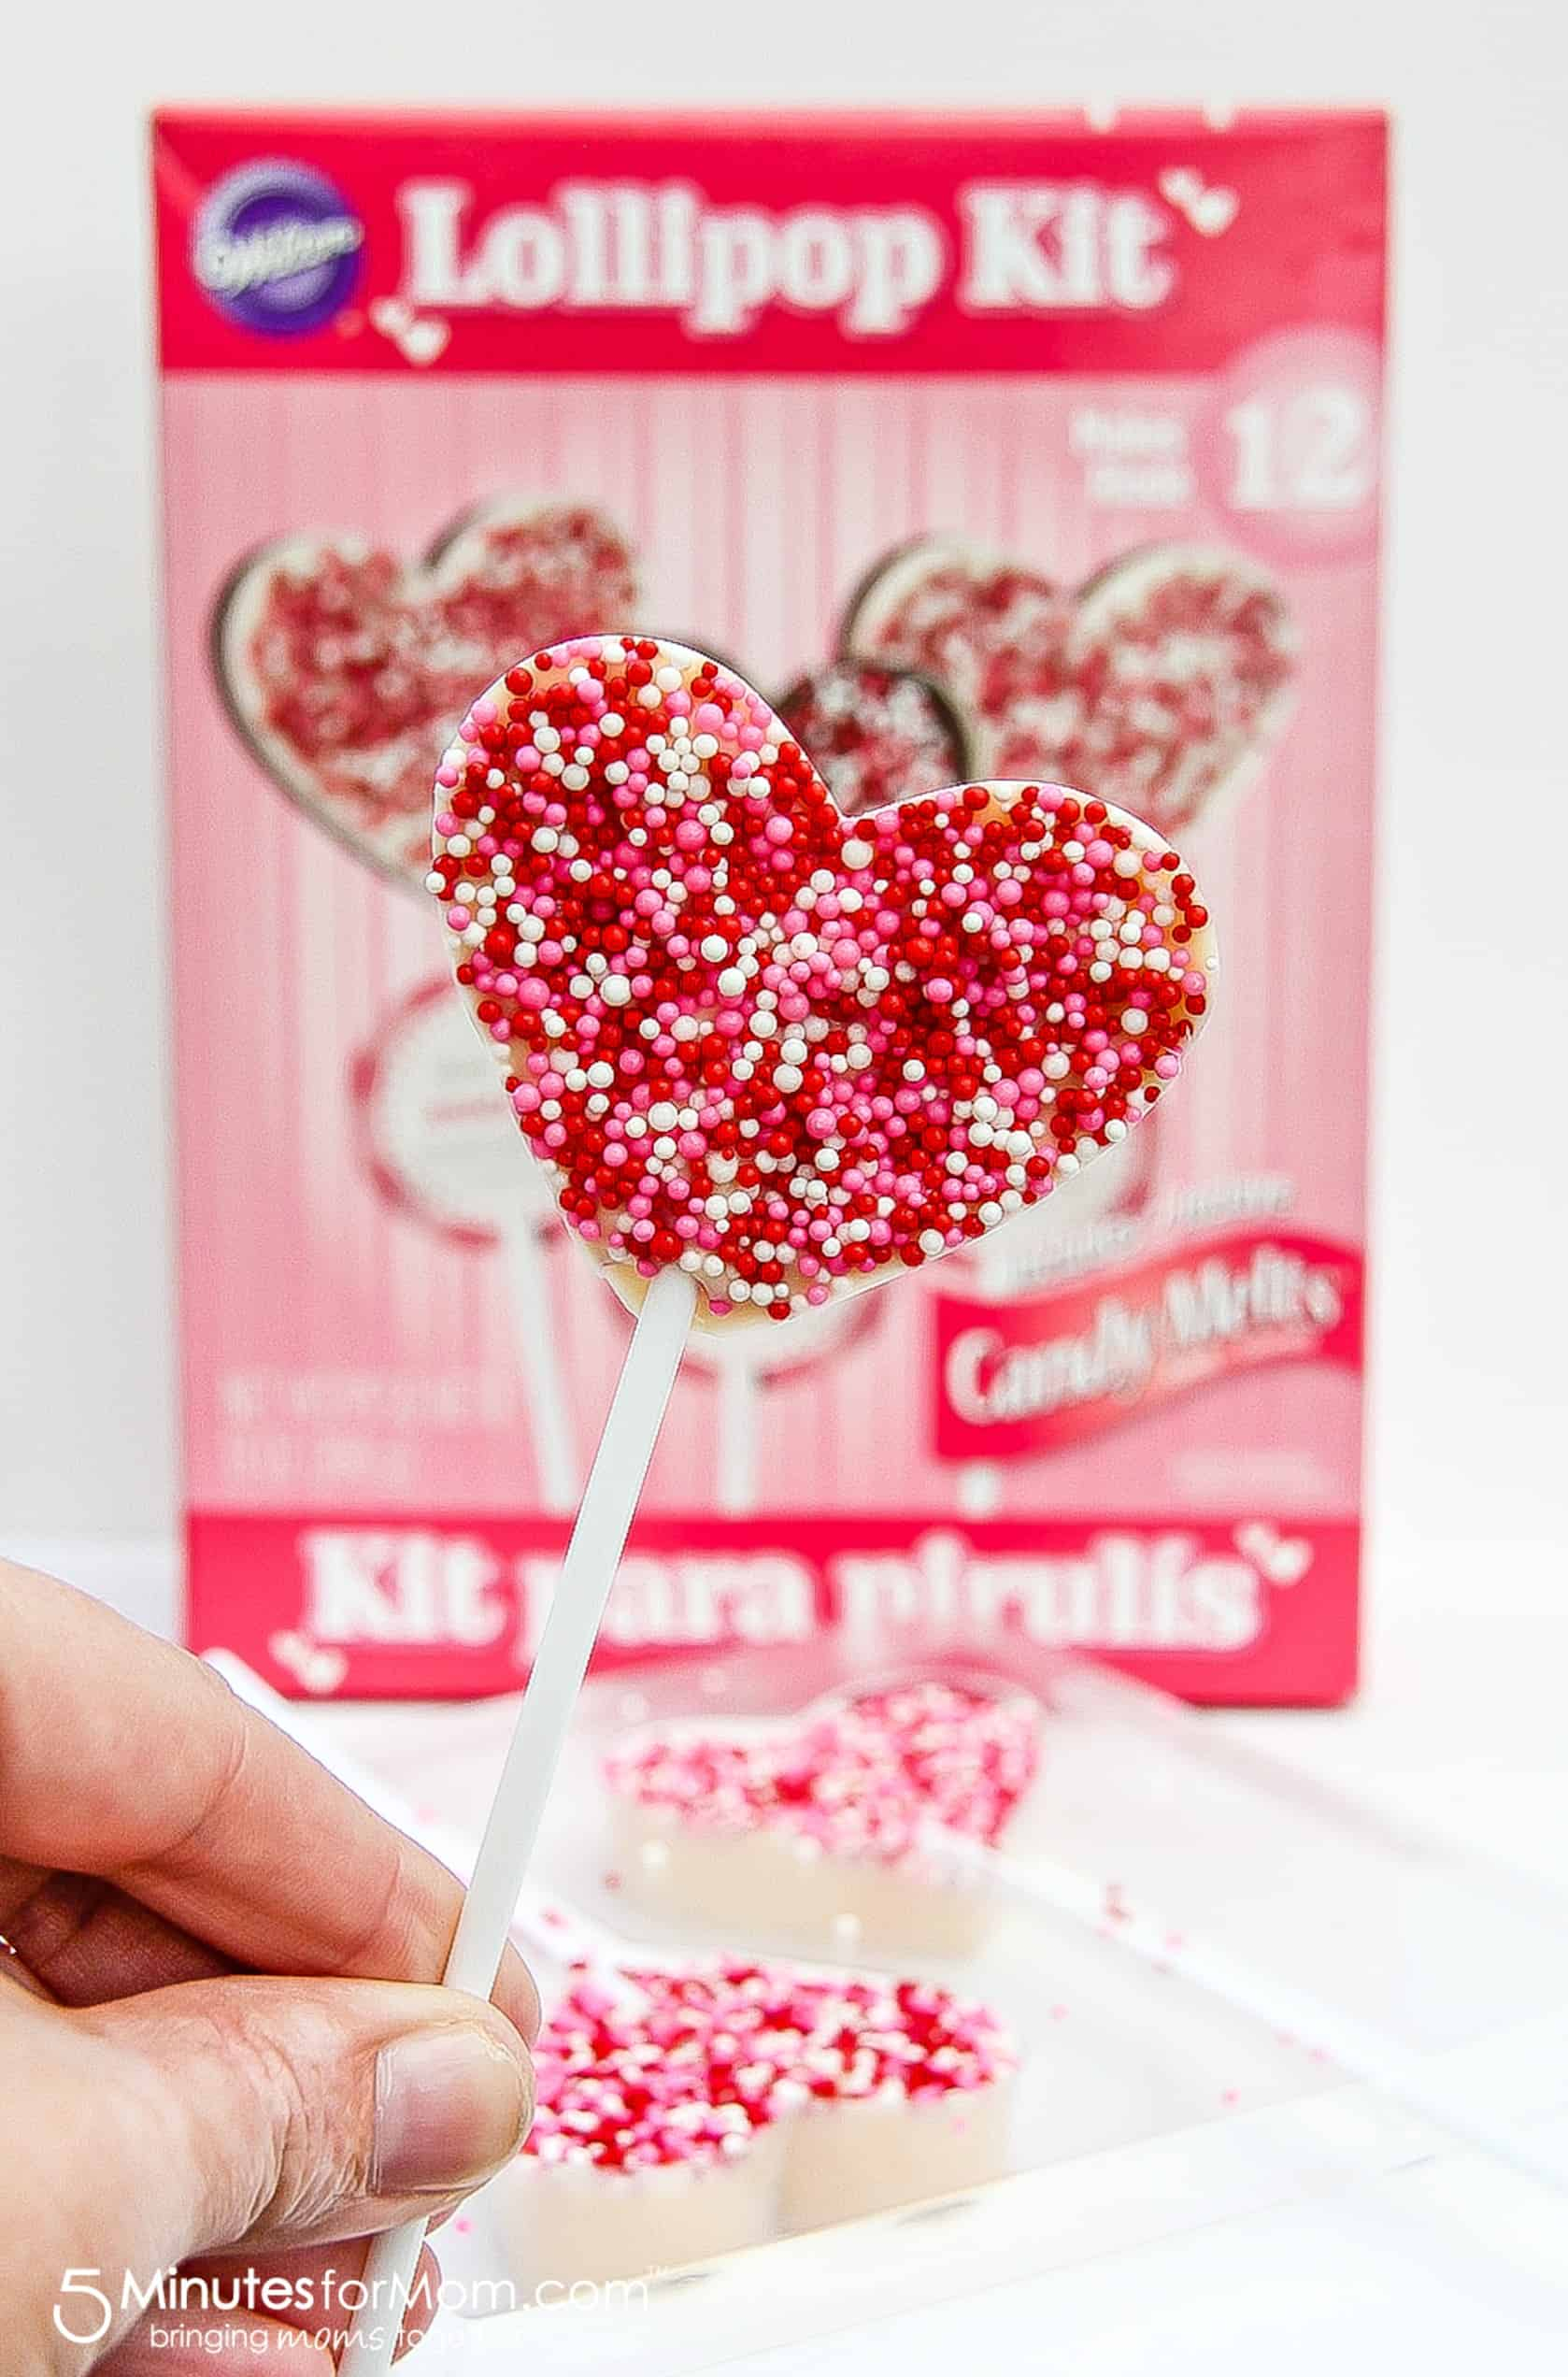 Make heart-shaped chocolate lollipop classrsoom treats with these easy kits from Party City